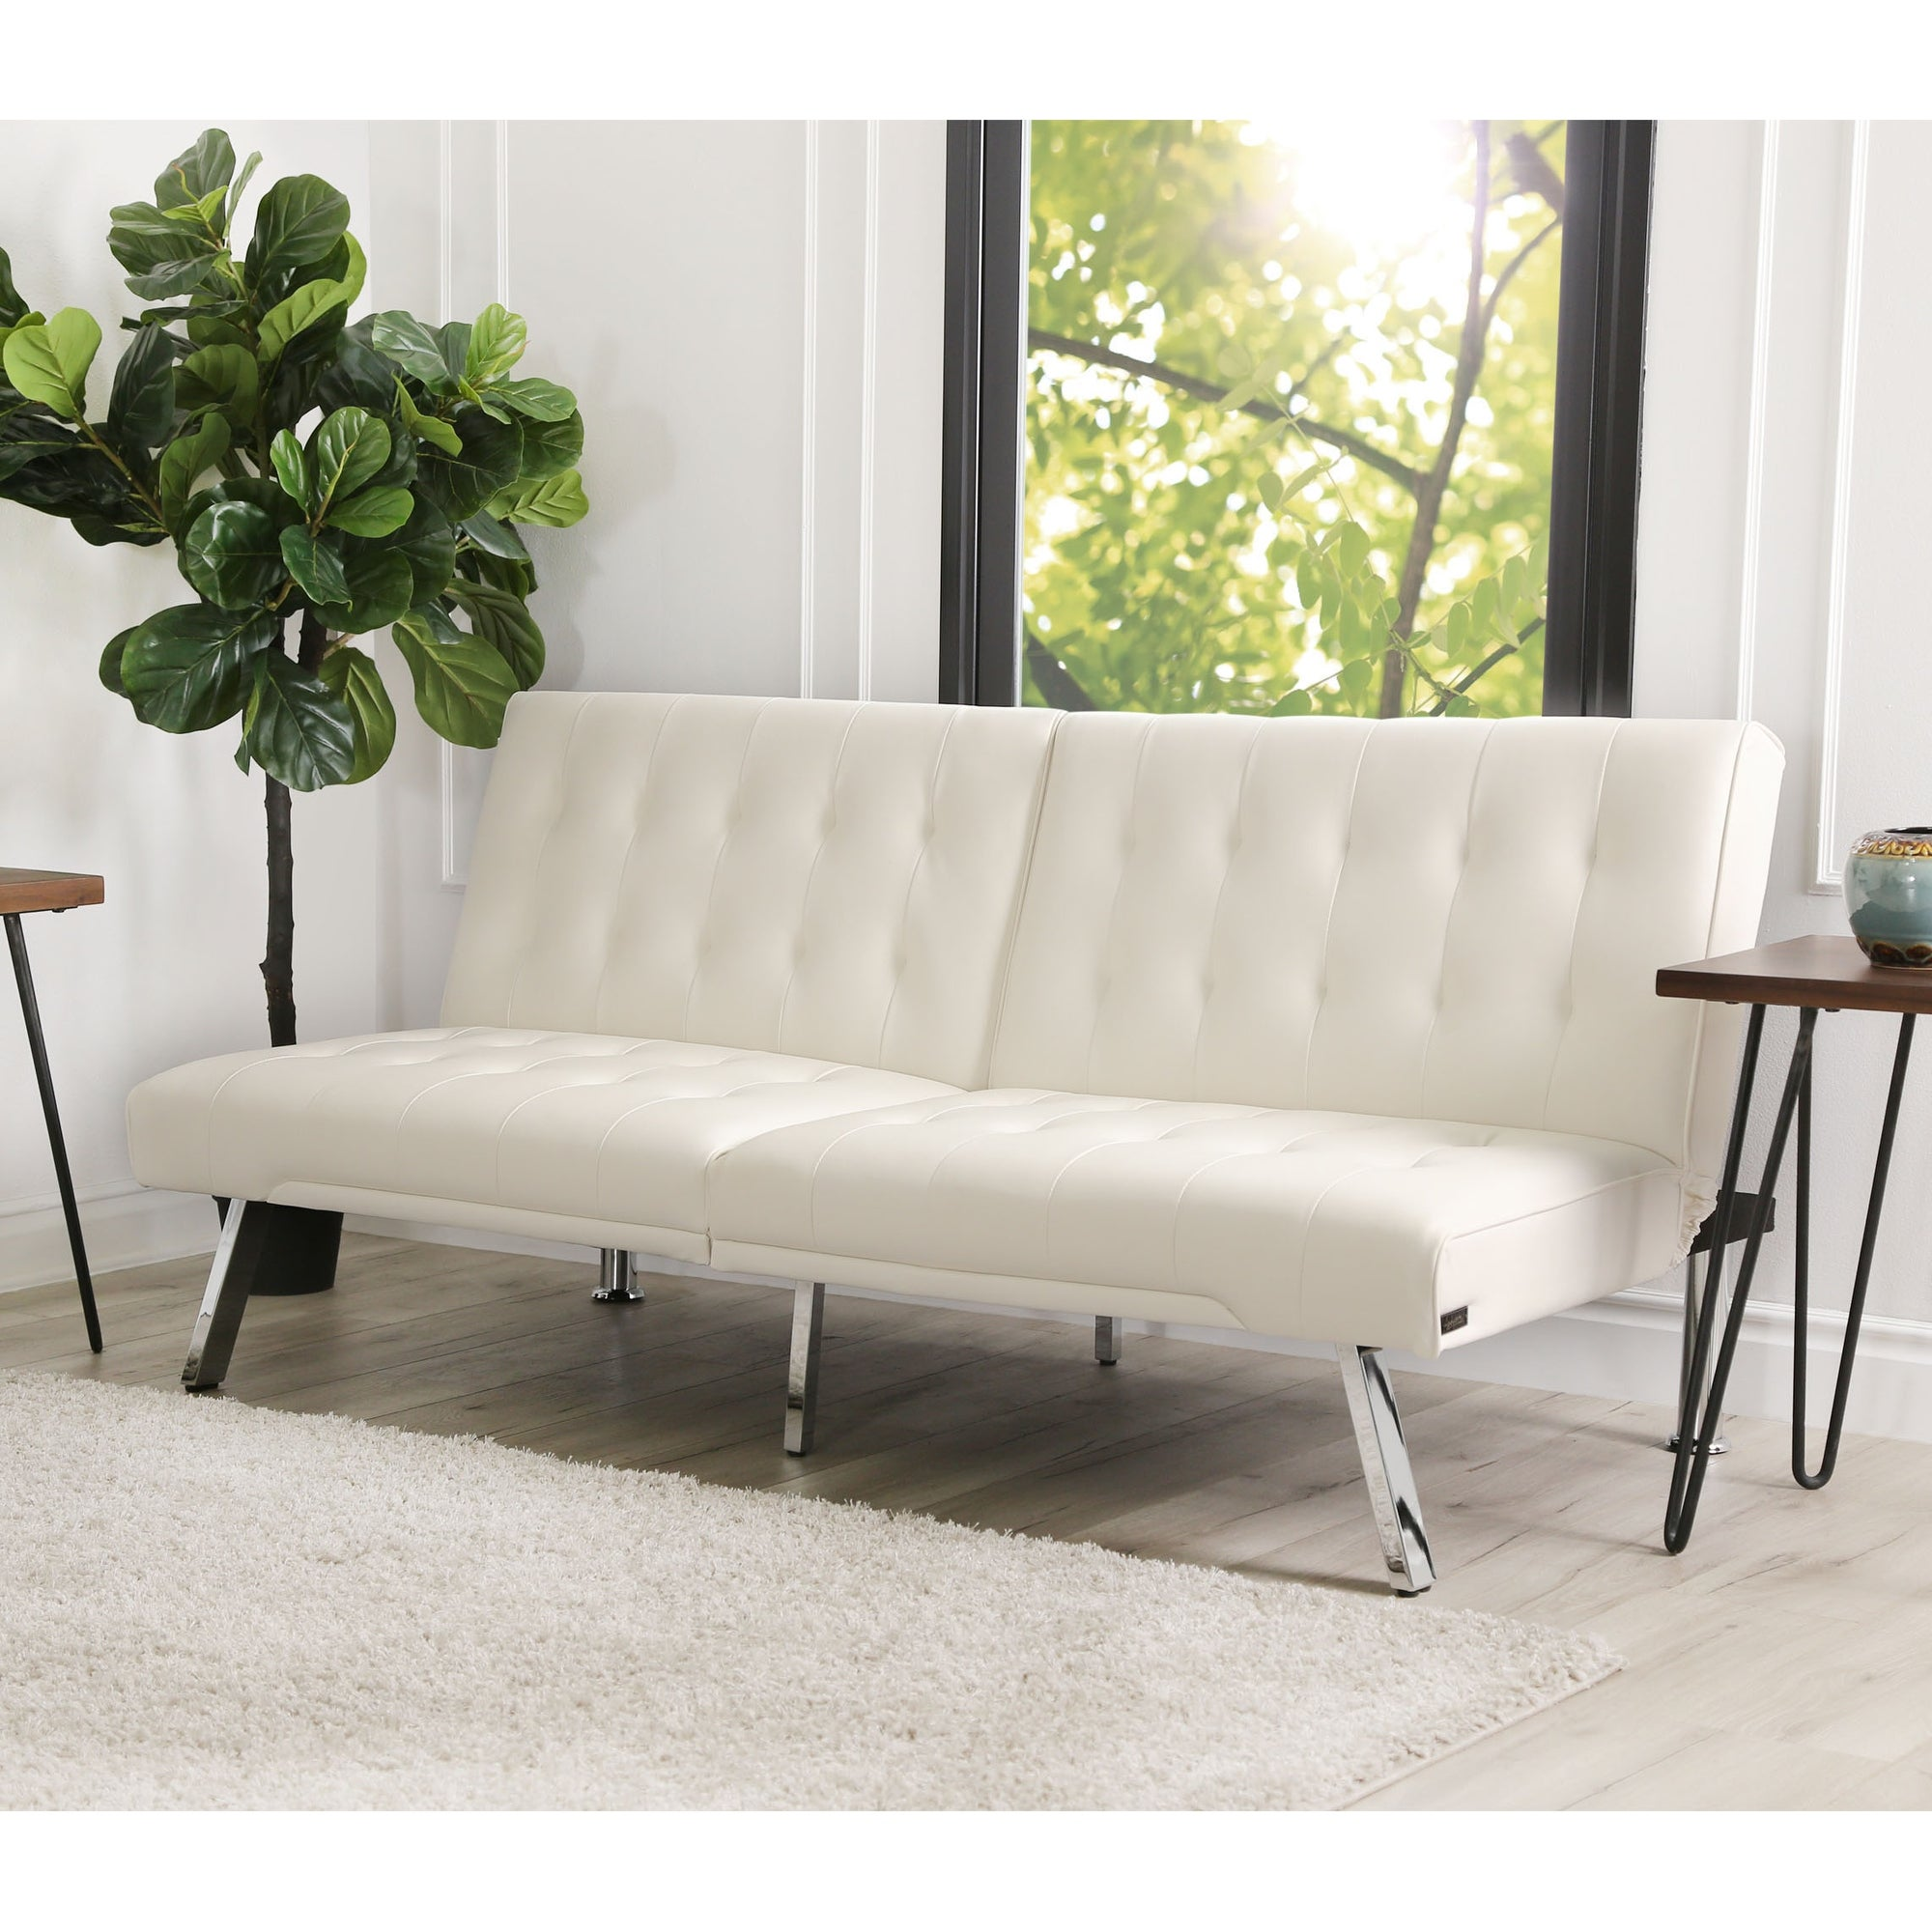 Picture of: Abbyson Jackson Ivory Faux Leather Foldable Futon Sofa Bed Overstock 9829805